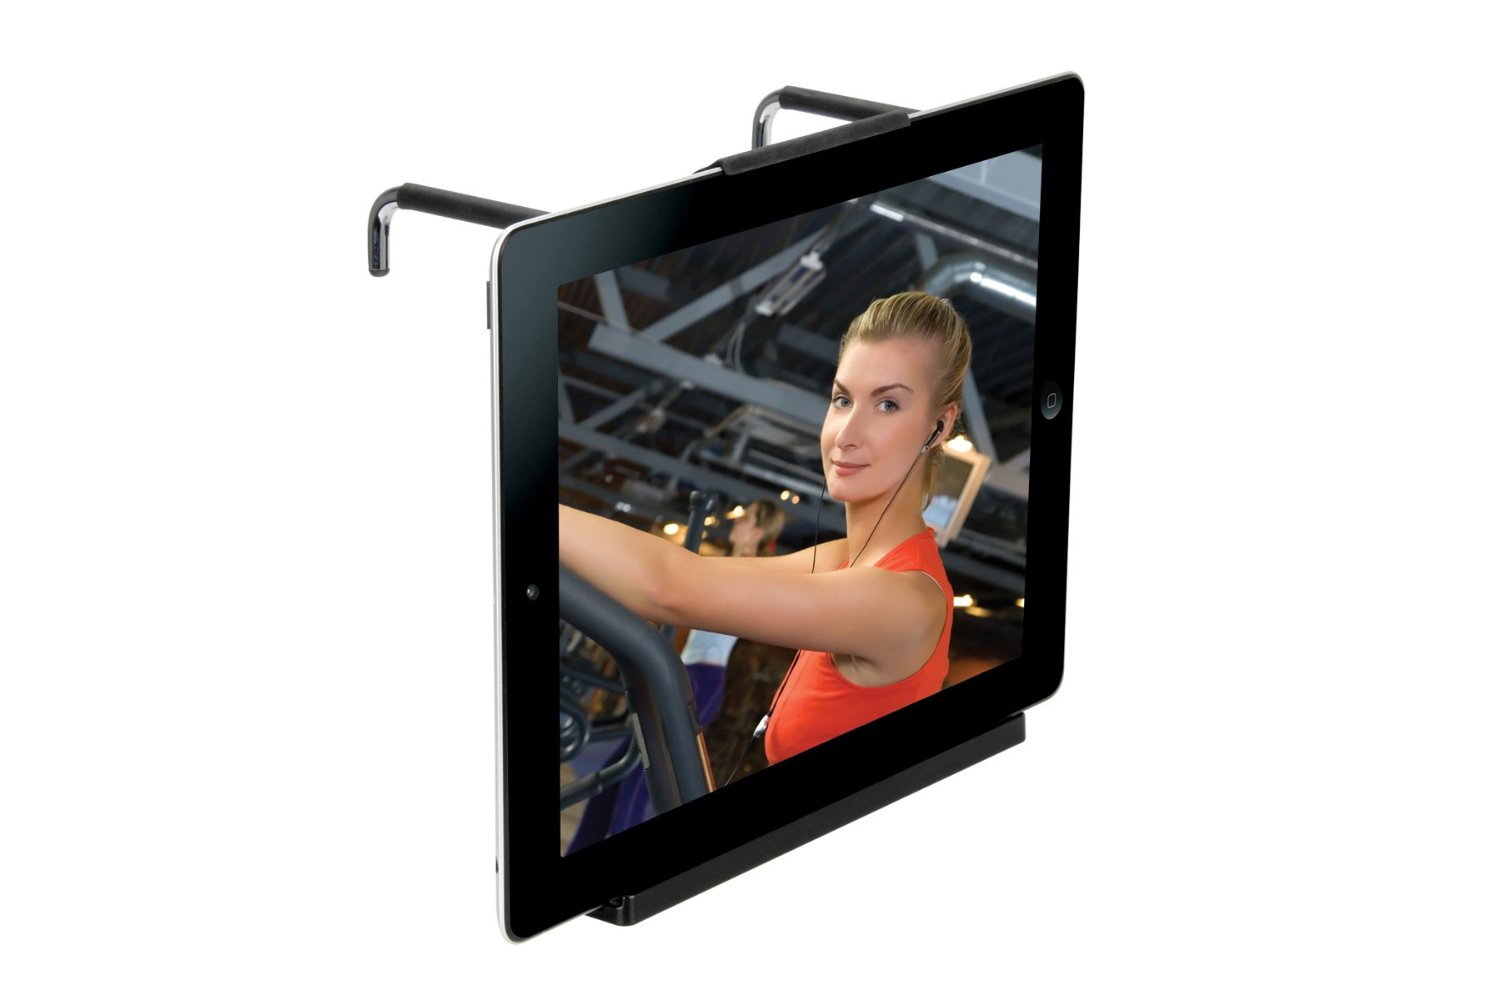 Exercise Mount For Your Tablets